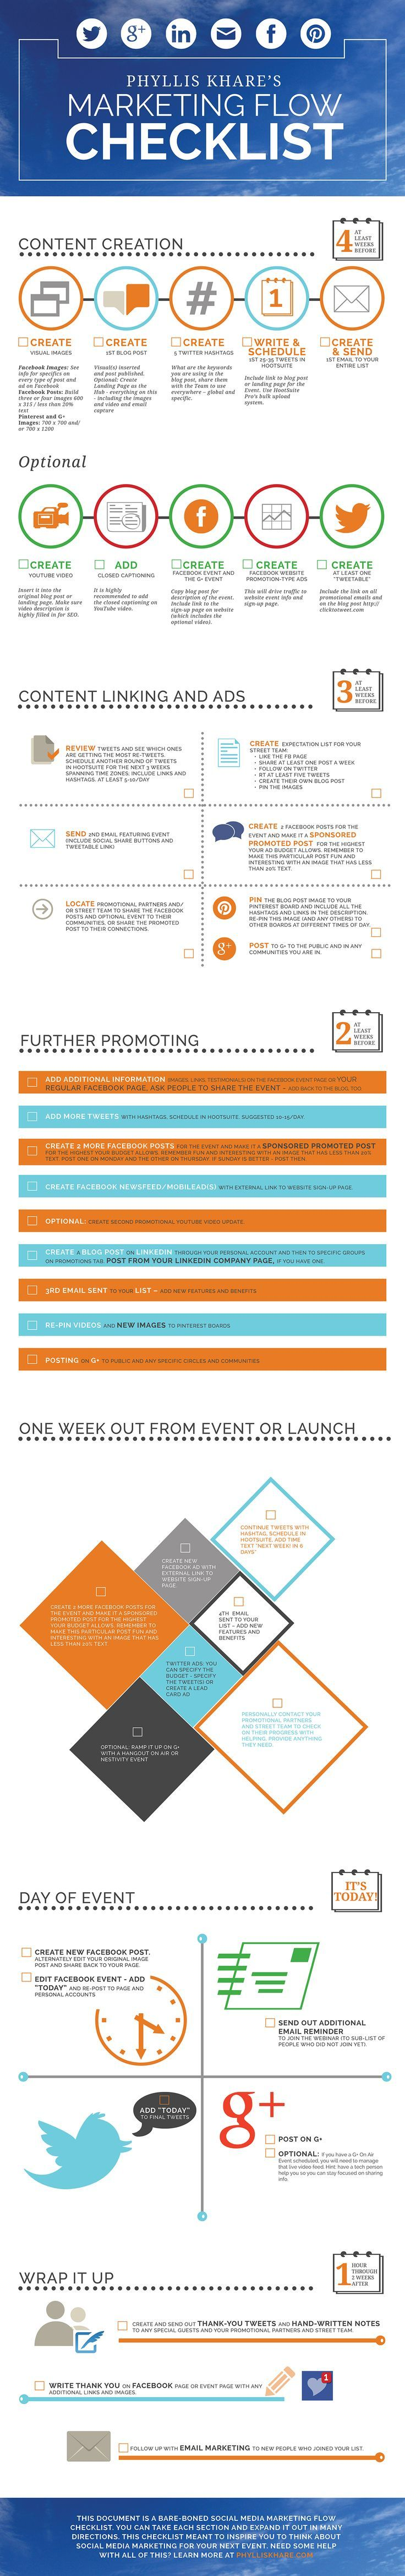 Essential checklist for marketing an event or product launch on social media by @phyllis khare